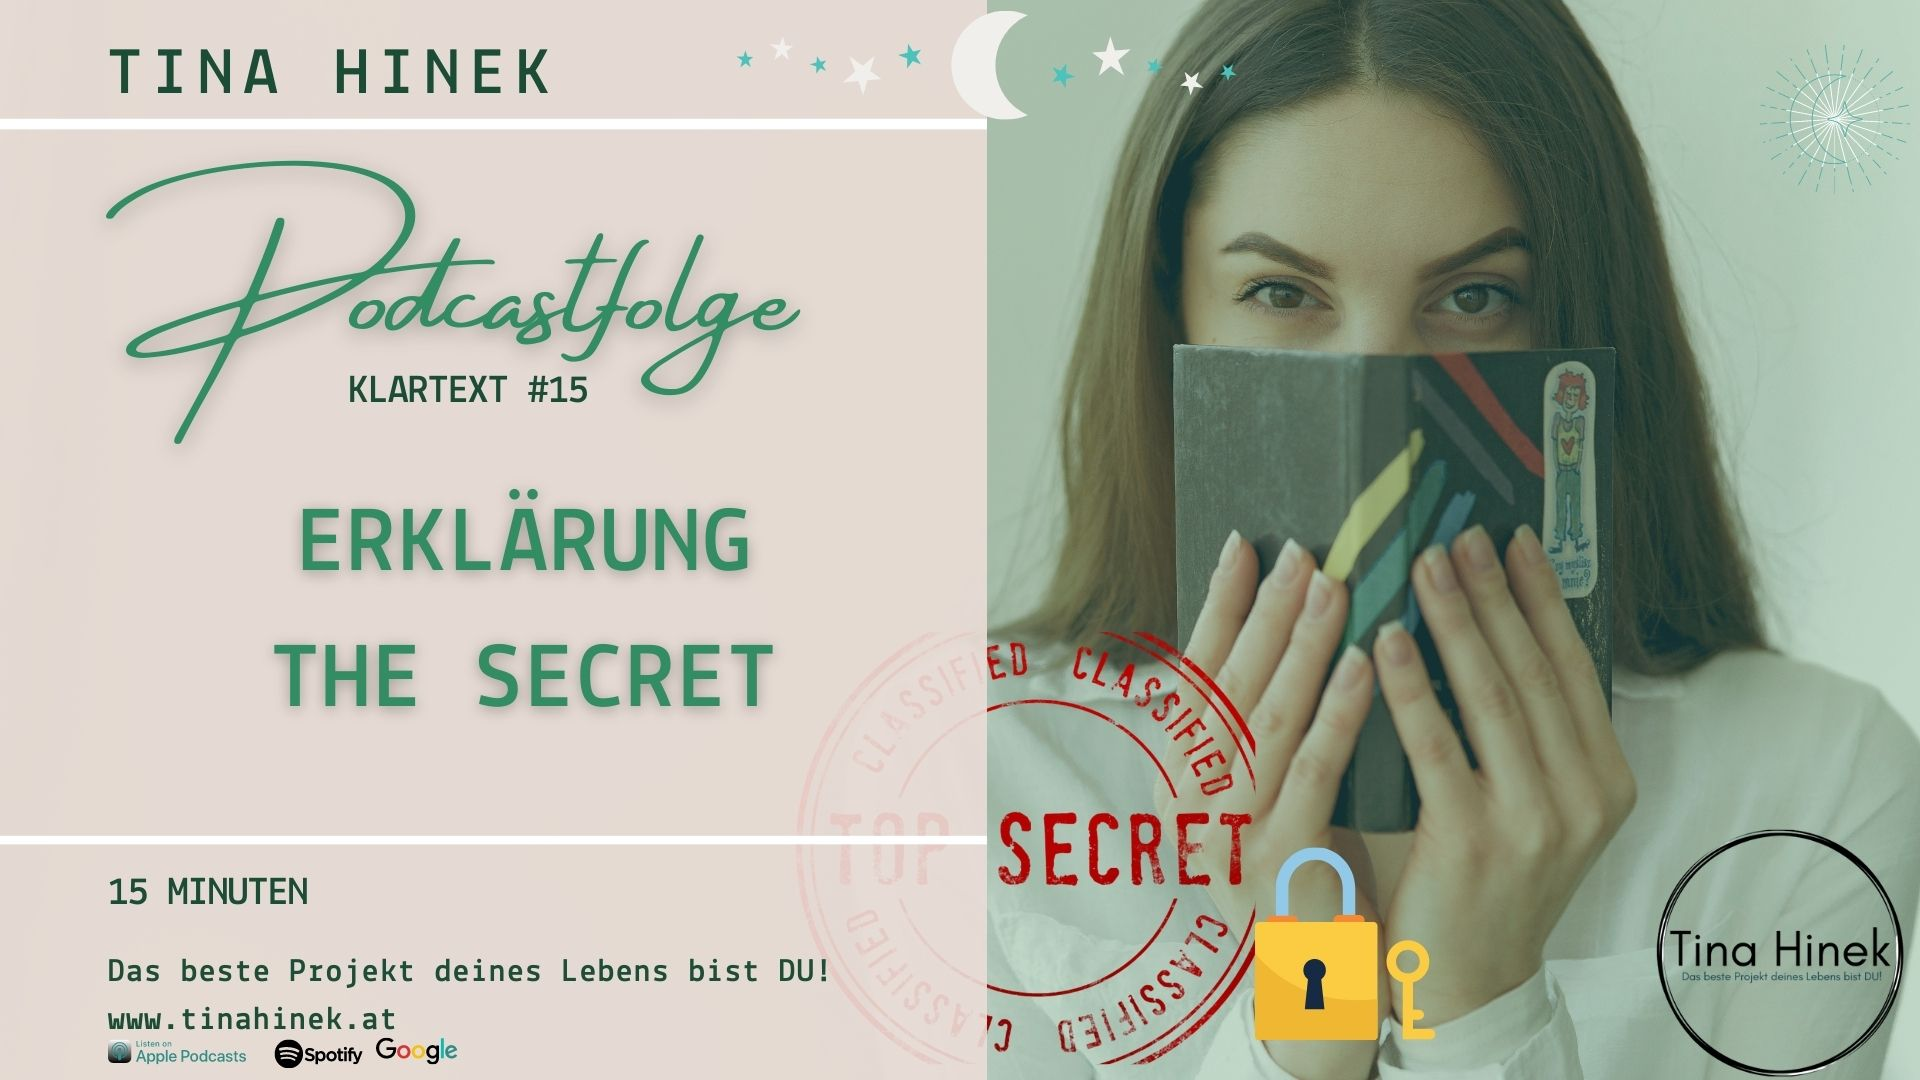 #15 PODCAST Klartext -ERKLÄRUNG - THE SECRET 15 MIN